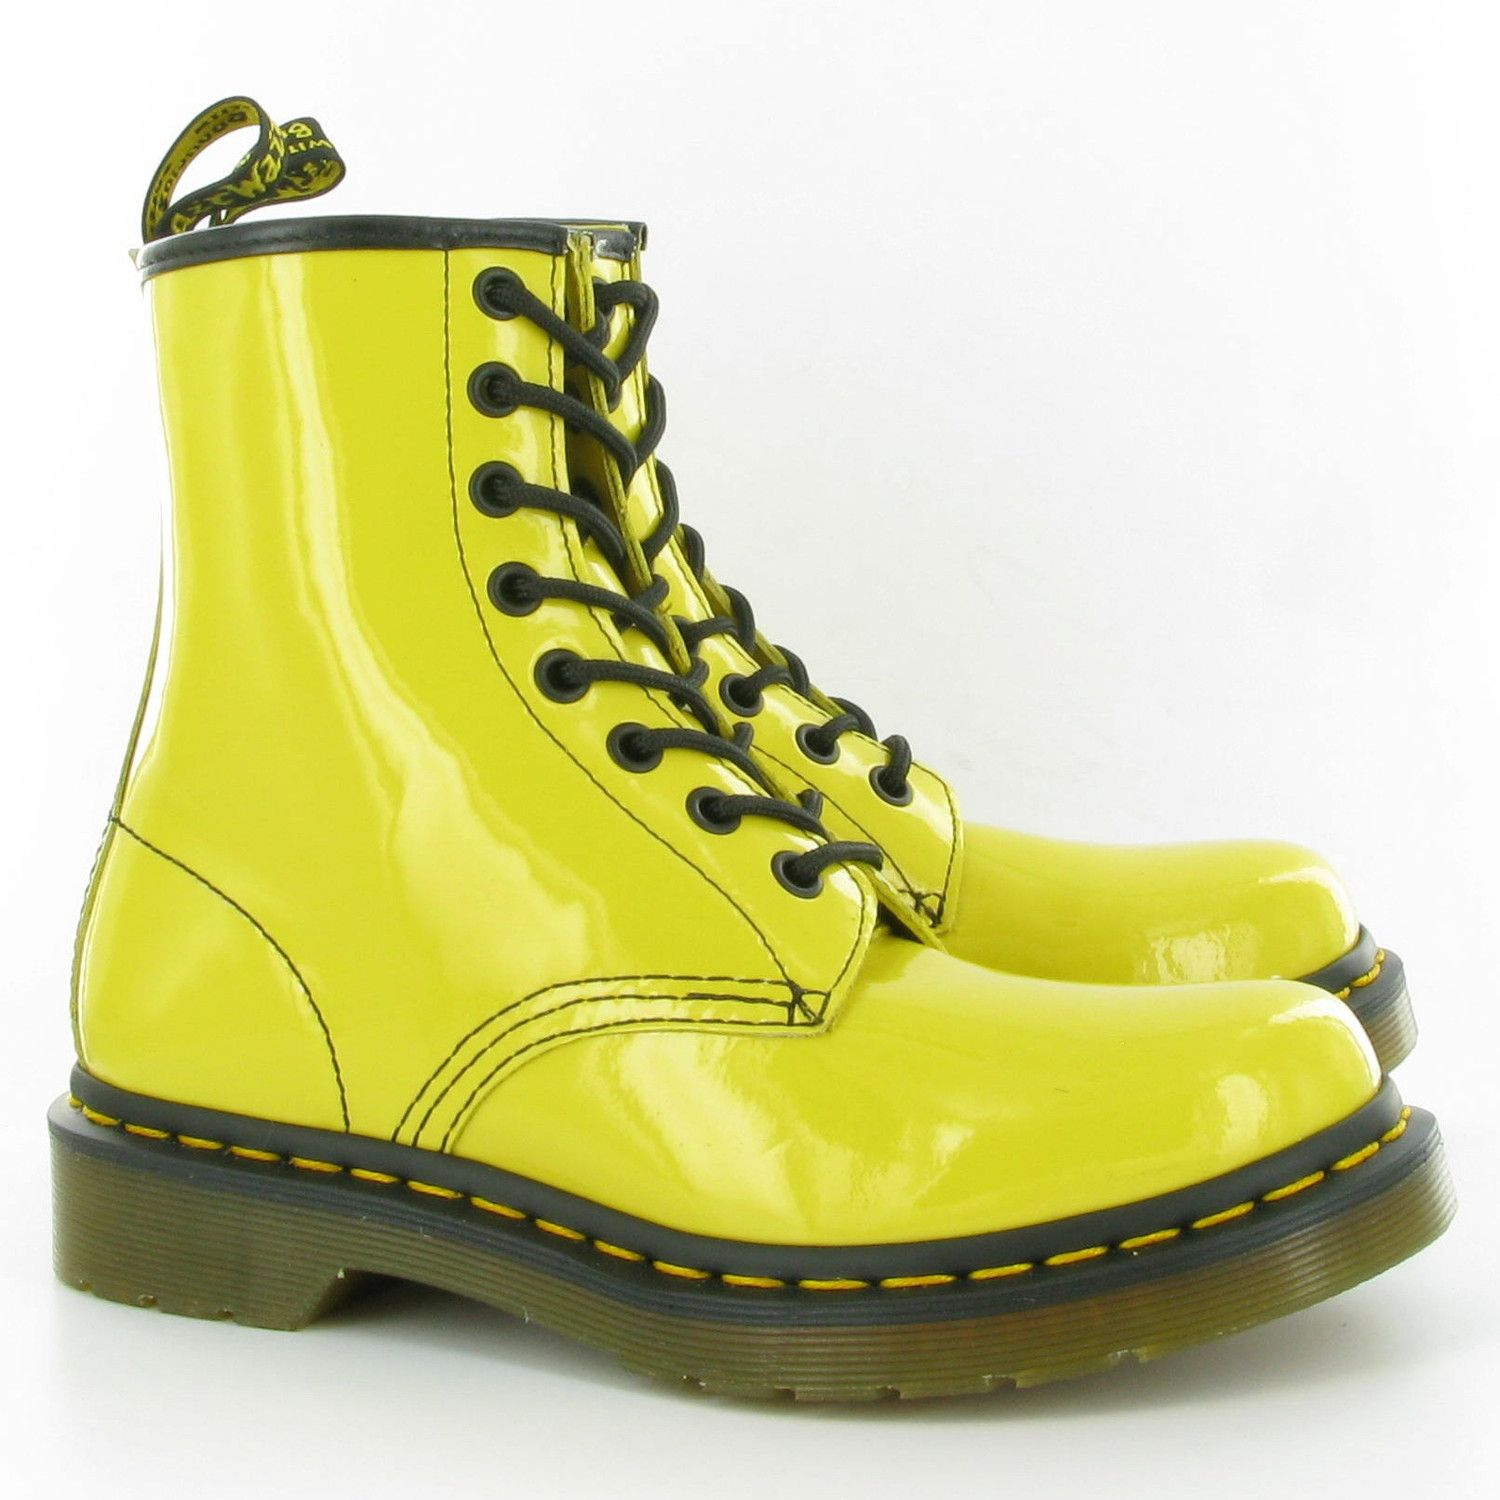 Dr Martens Leather 1460 Patent Lamper 8 Eyelet Boots In Yellow Patent Boots Martens Dr Martens